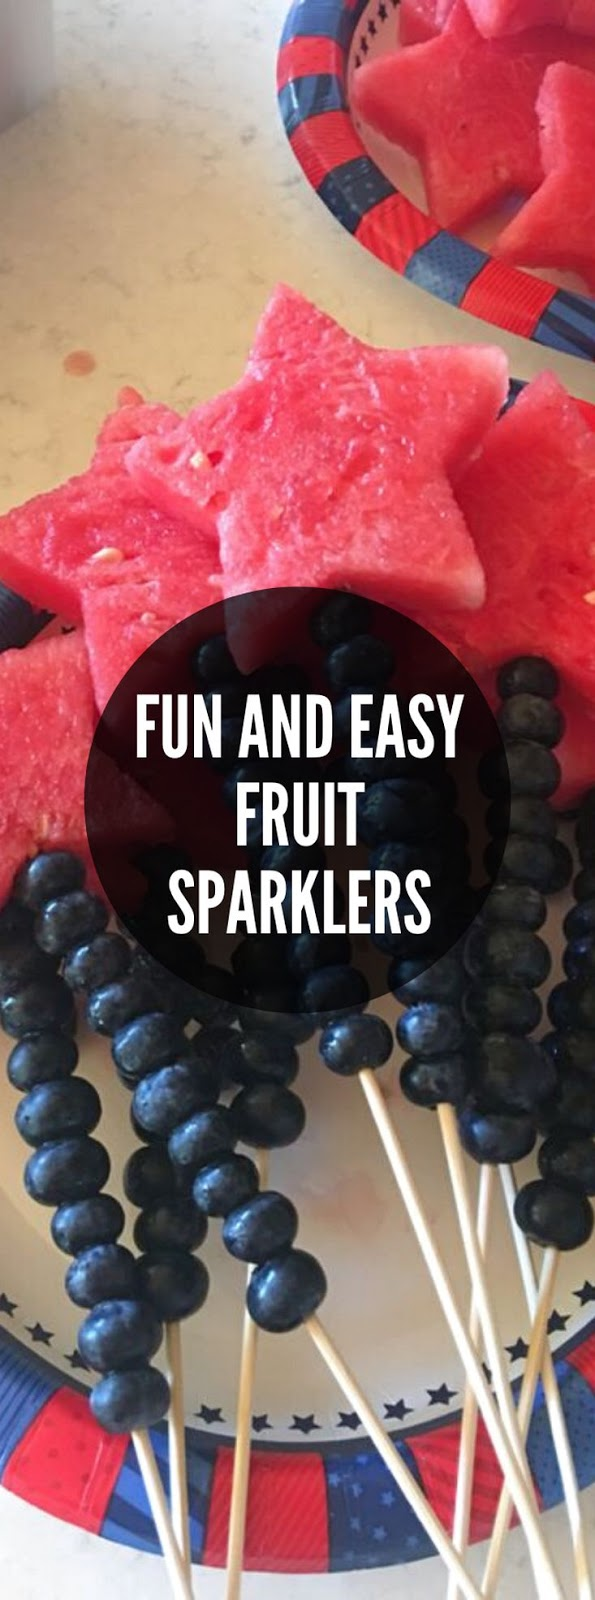 Fun and Easy Fruit Sparklers